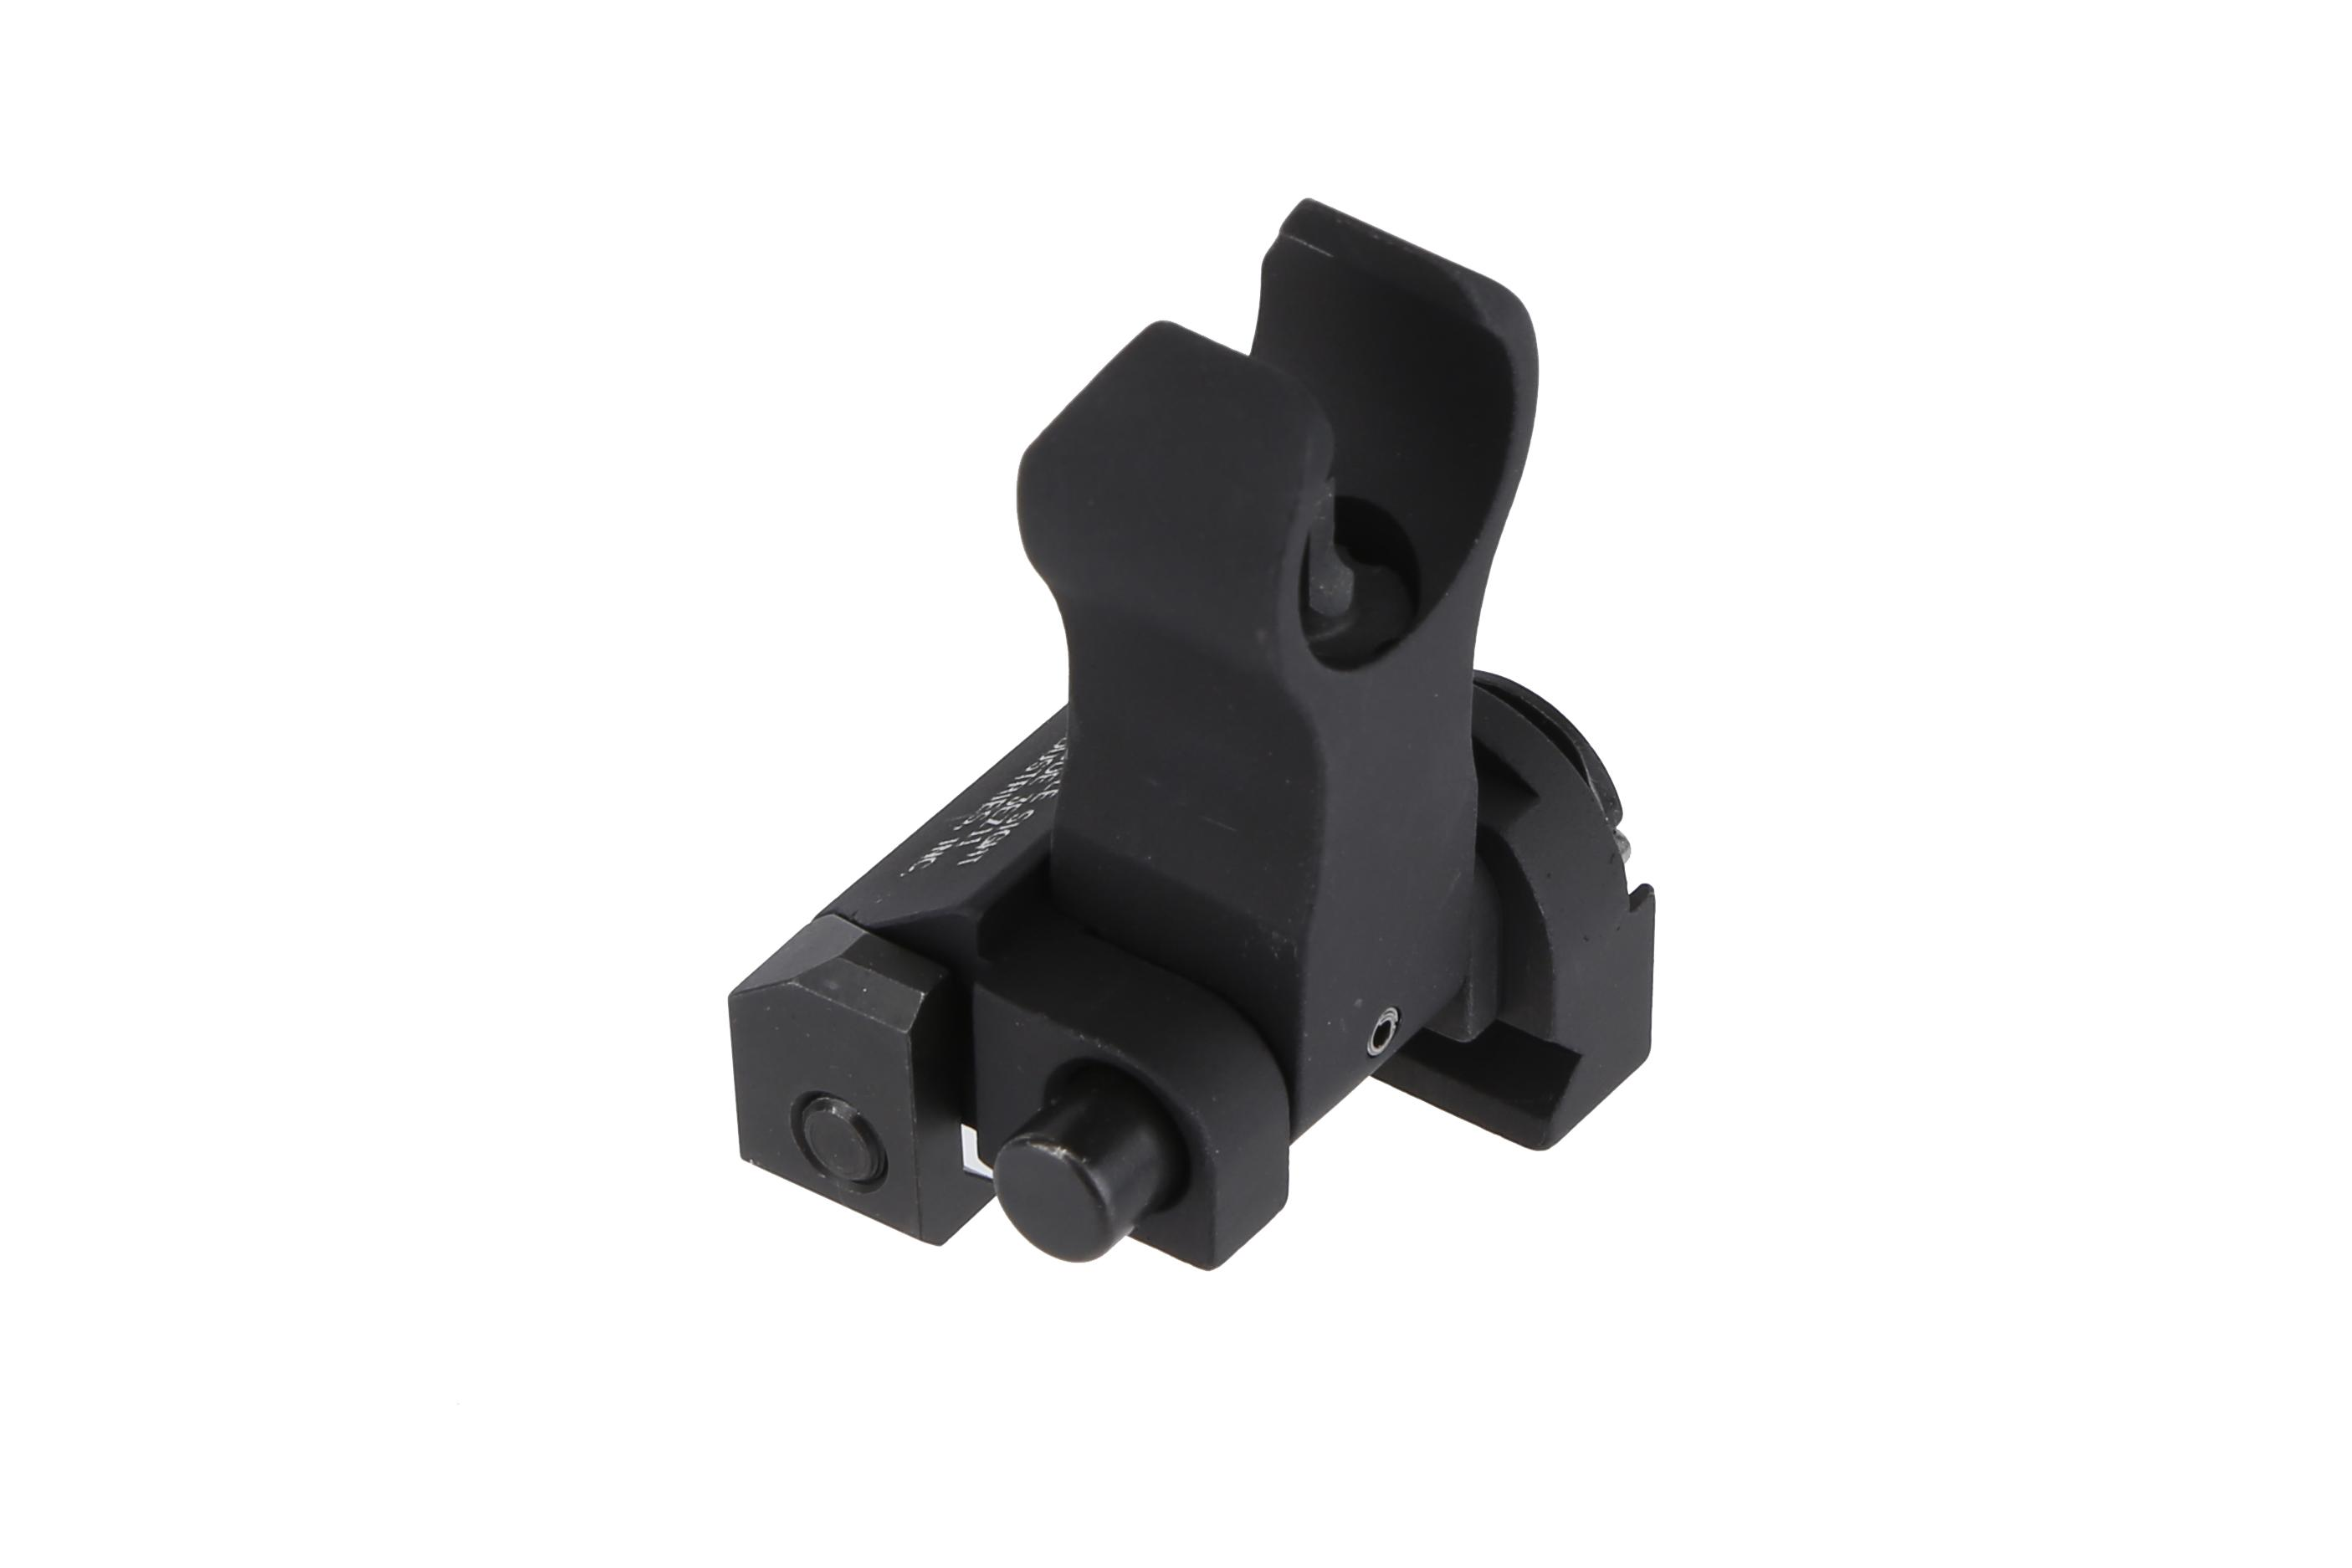 The Troy folding front Battle Sight is black hardcoat anodized